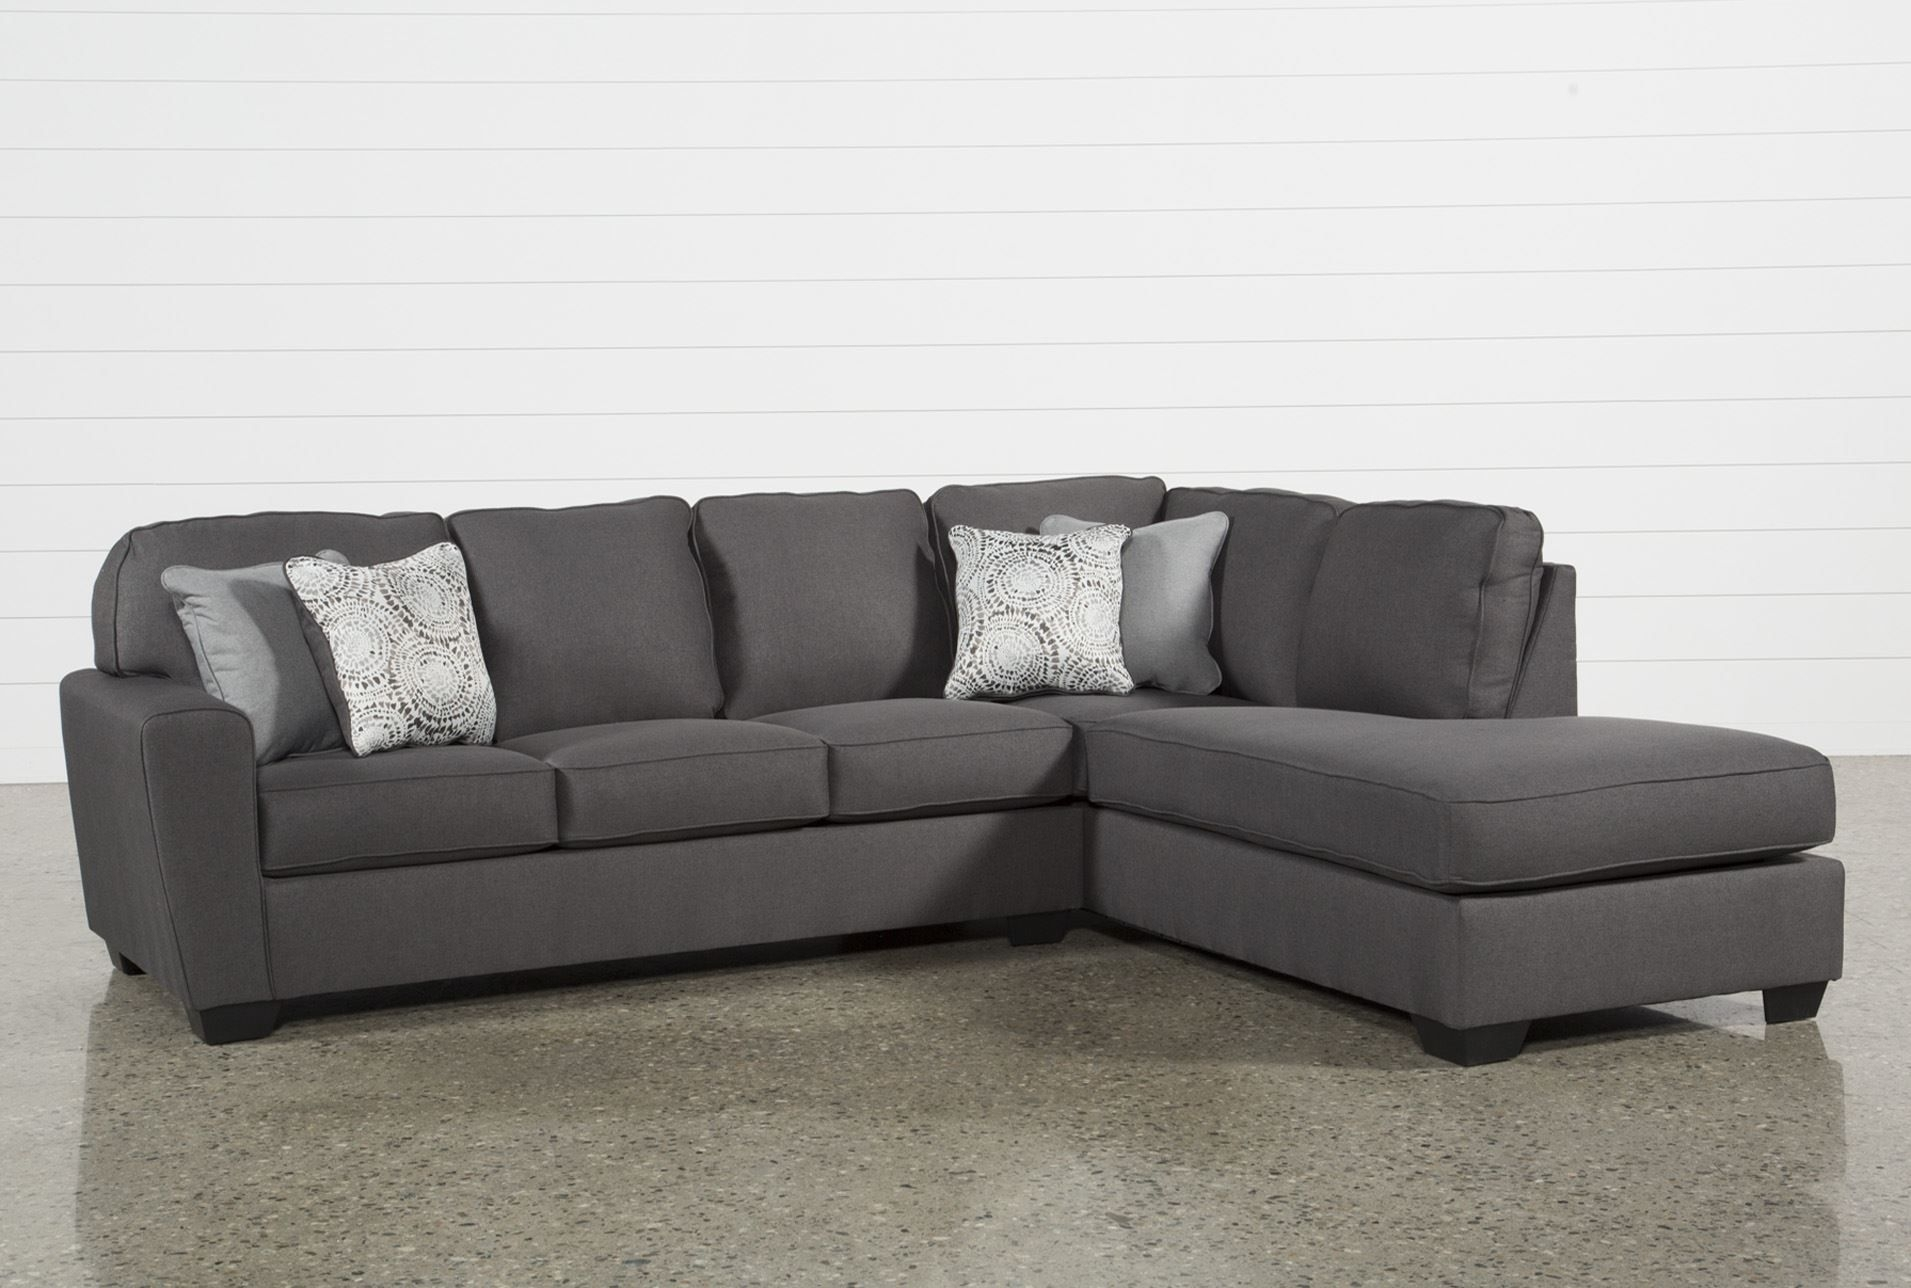 Mcdade Graphite 2 Piece Sectional W/raf Chaise | Products For Mcculla Sofa Sectionals With Reversible Chaise (View 8 of 30)